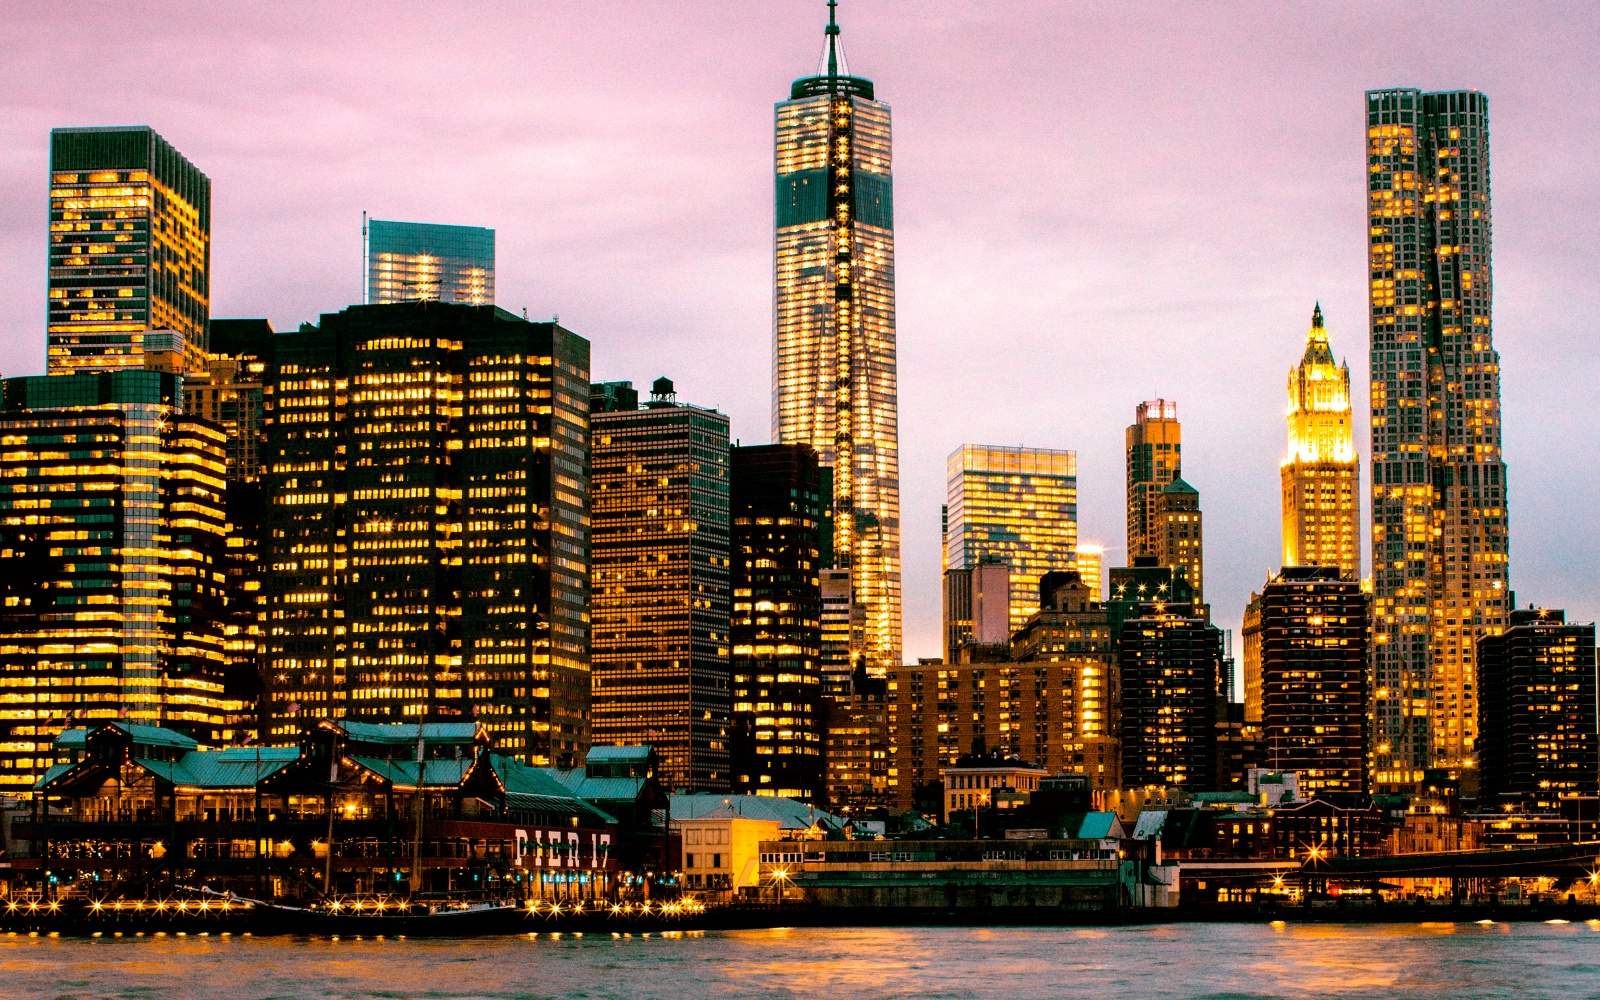 201411-a-americas-favorite-cities-new-york